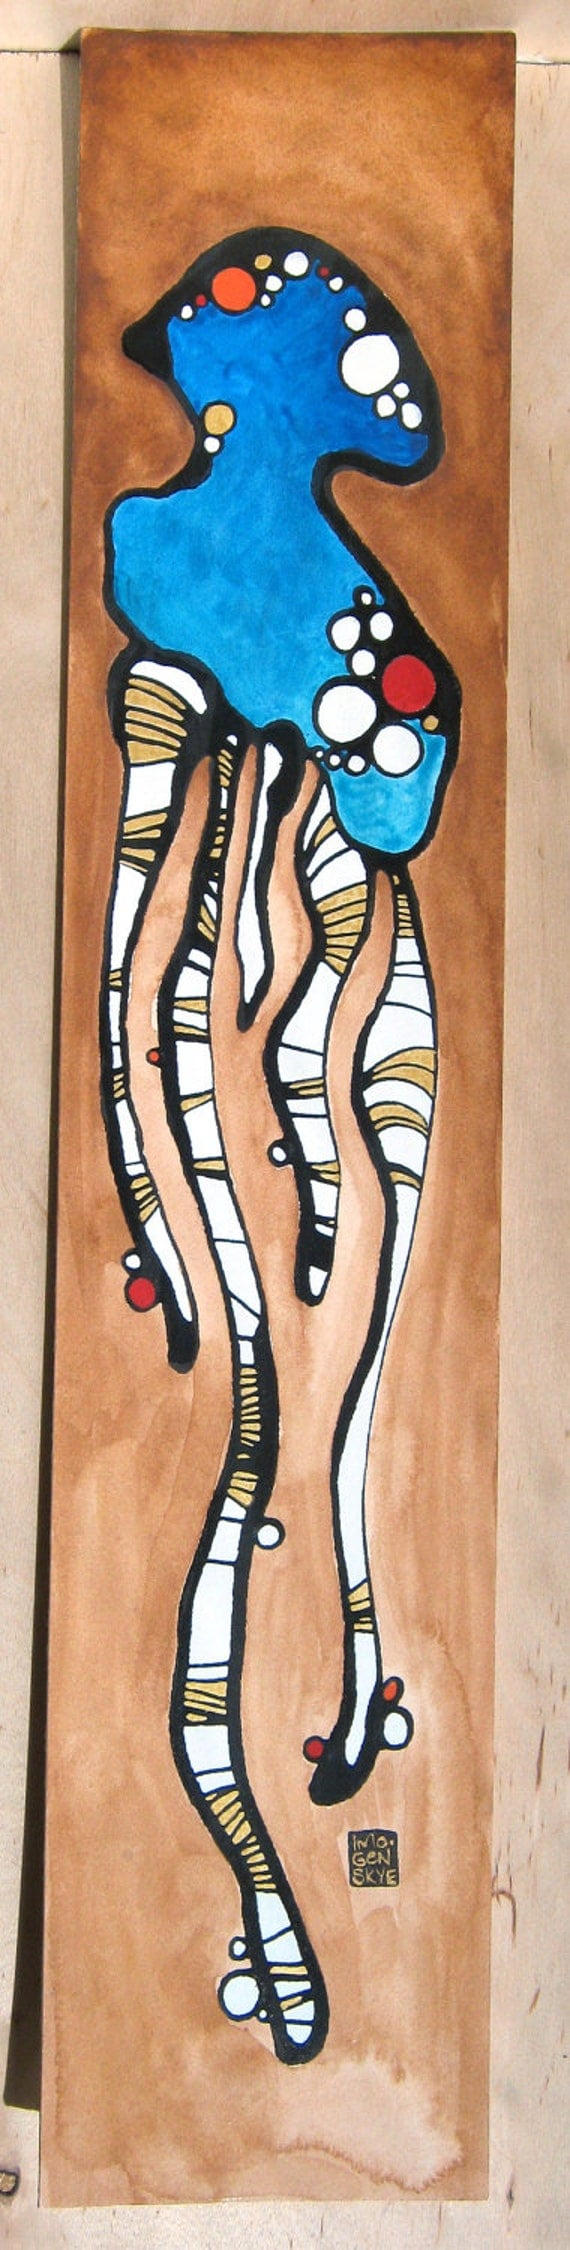 Sea Creature Squid- SQUIDDY THING- Original Painting, Signed, Ink, Gouache & Watercolour